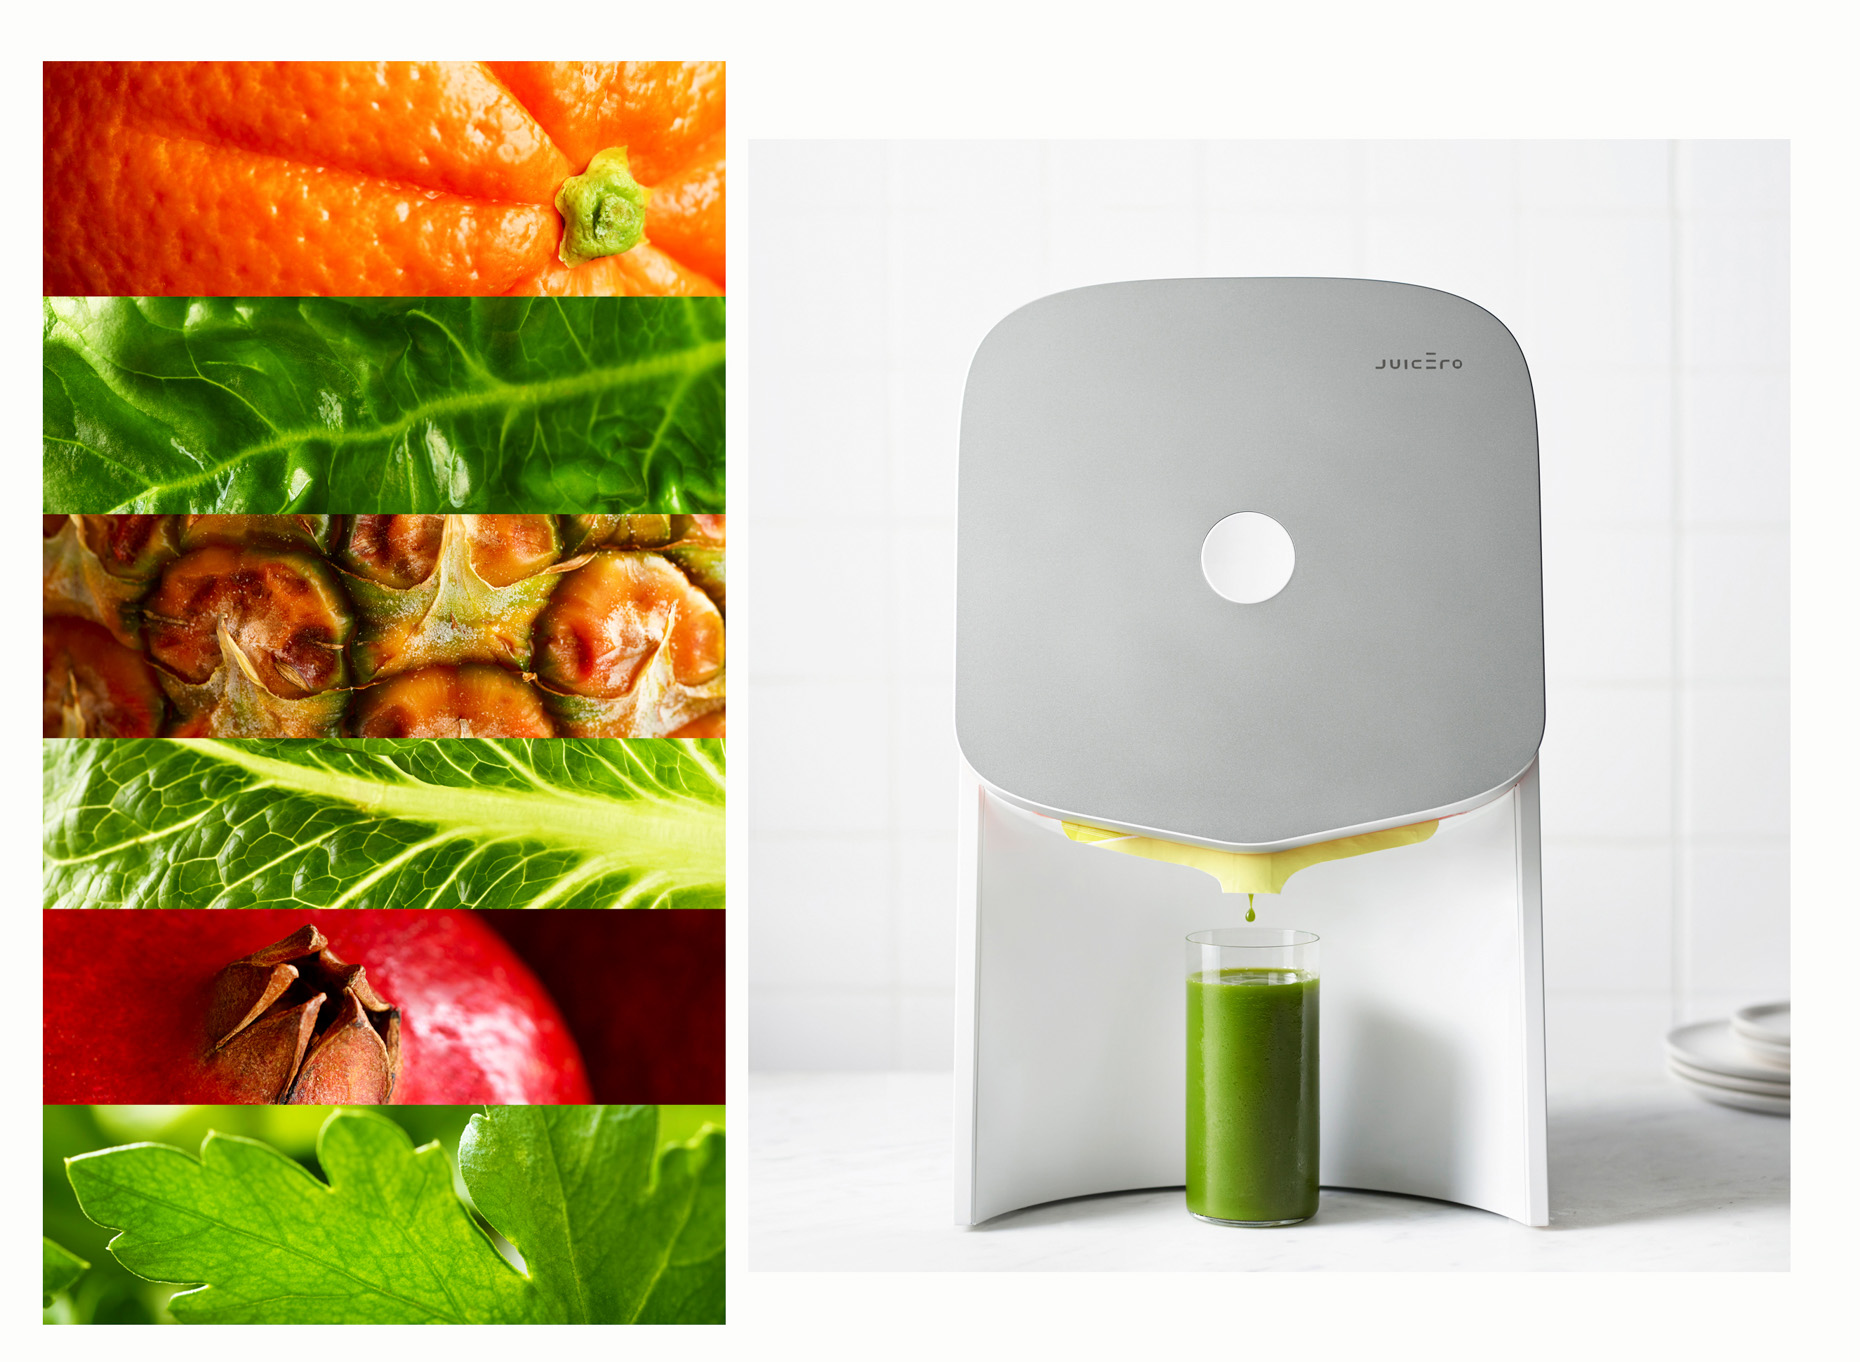 Remington_Juicero2